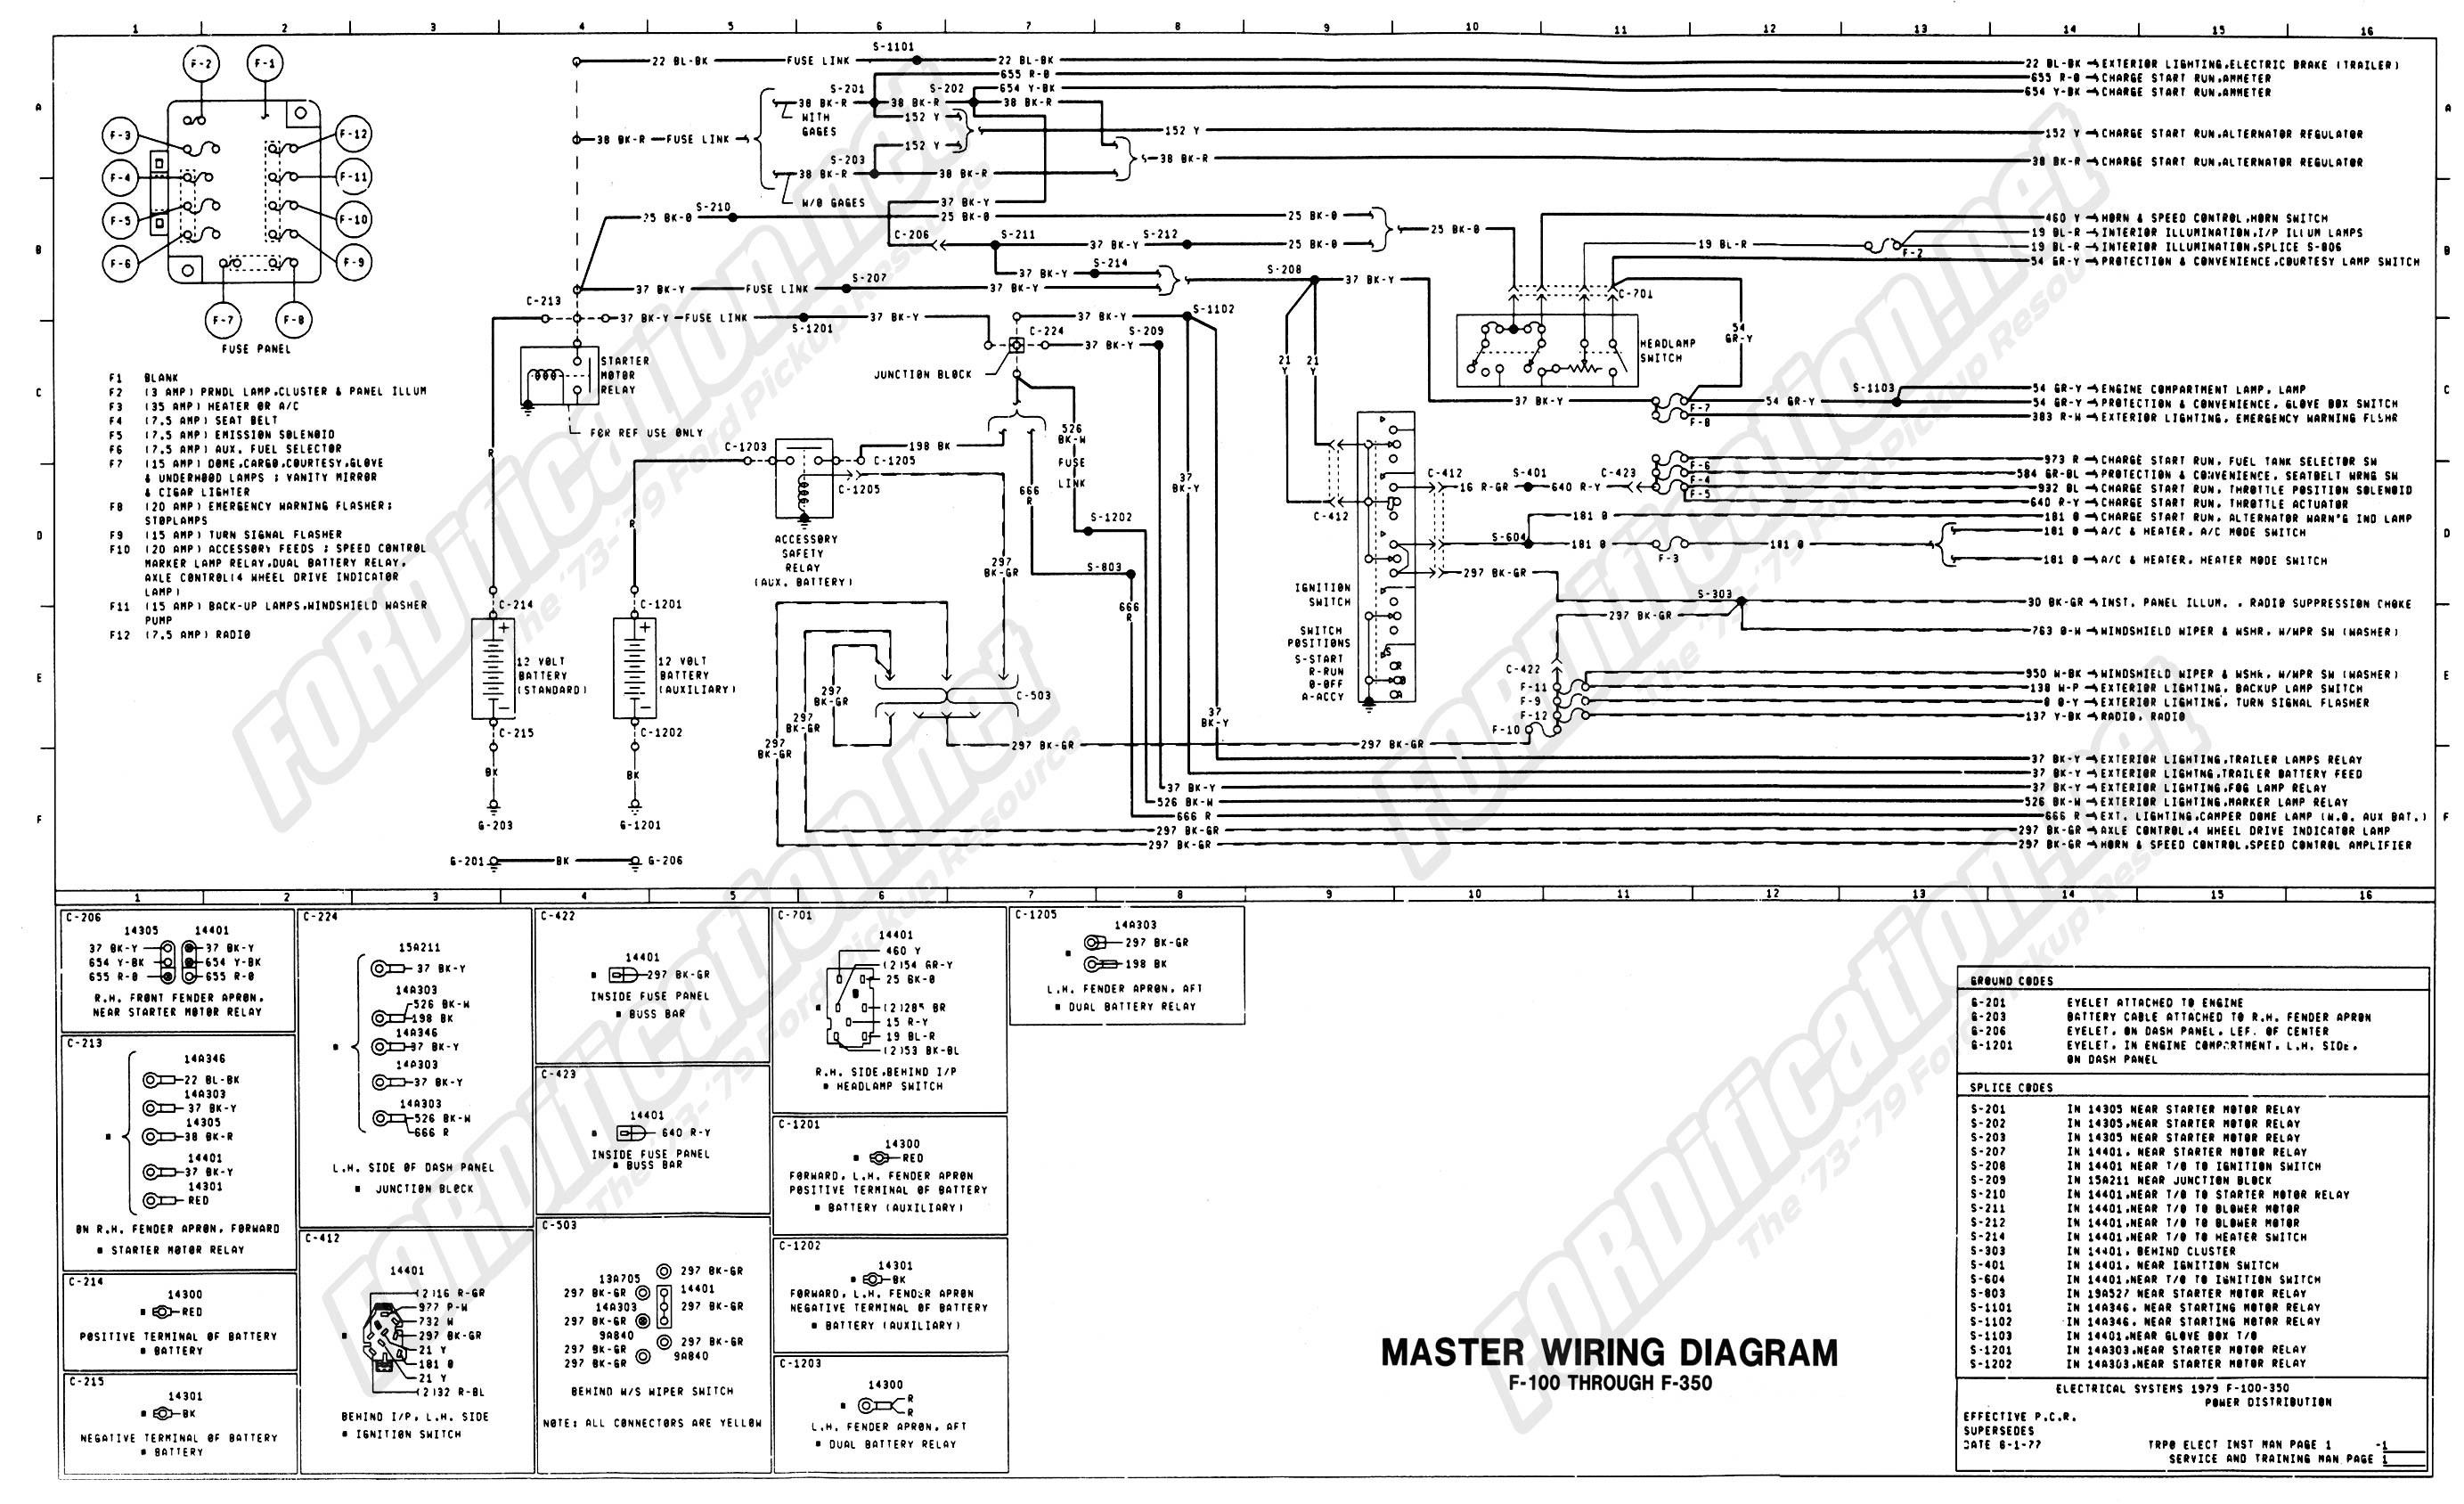 2003 Sterling Wiring Diagram Stereo Reveolution Of Sony Auto Cd Player Truck Wire Center U2022 Rh 207 246 102 26 Rca Wsp150